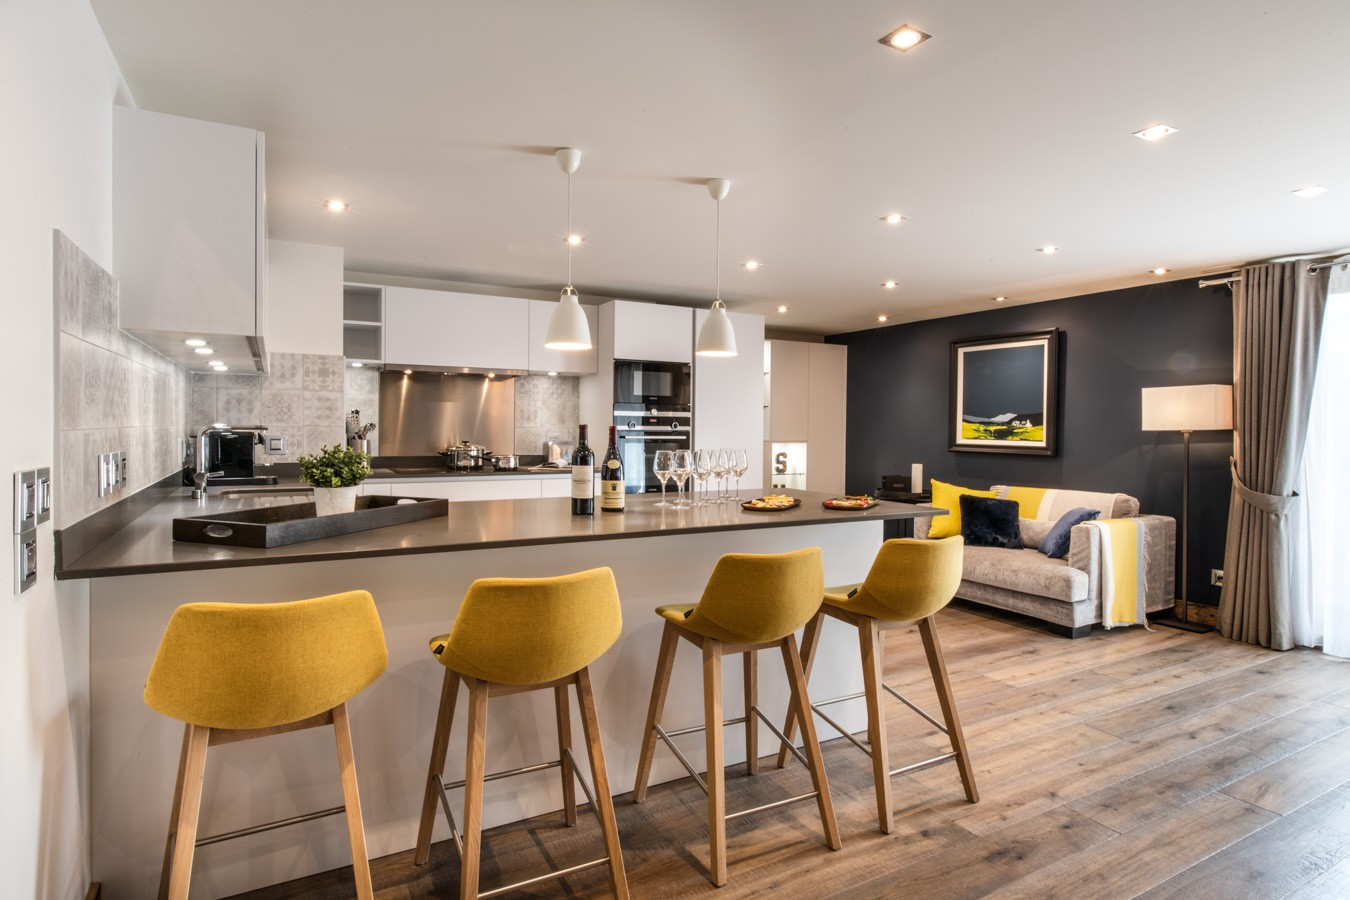 Les Gets Location Appartement Luxe Anrocha Cuisine 3